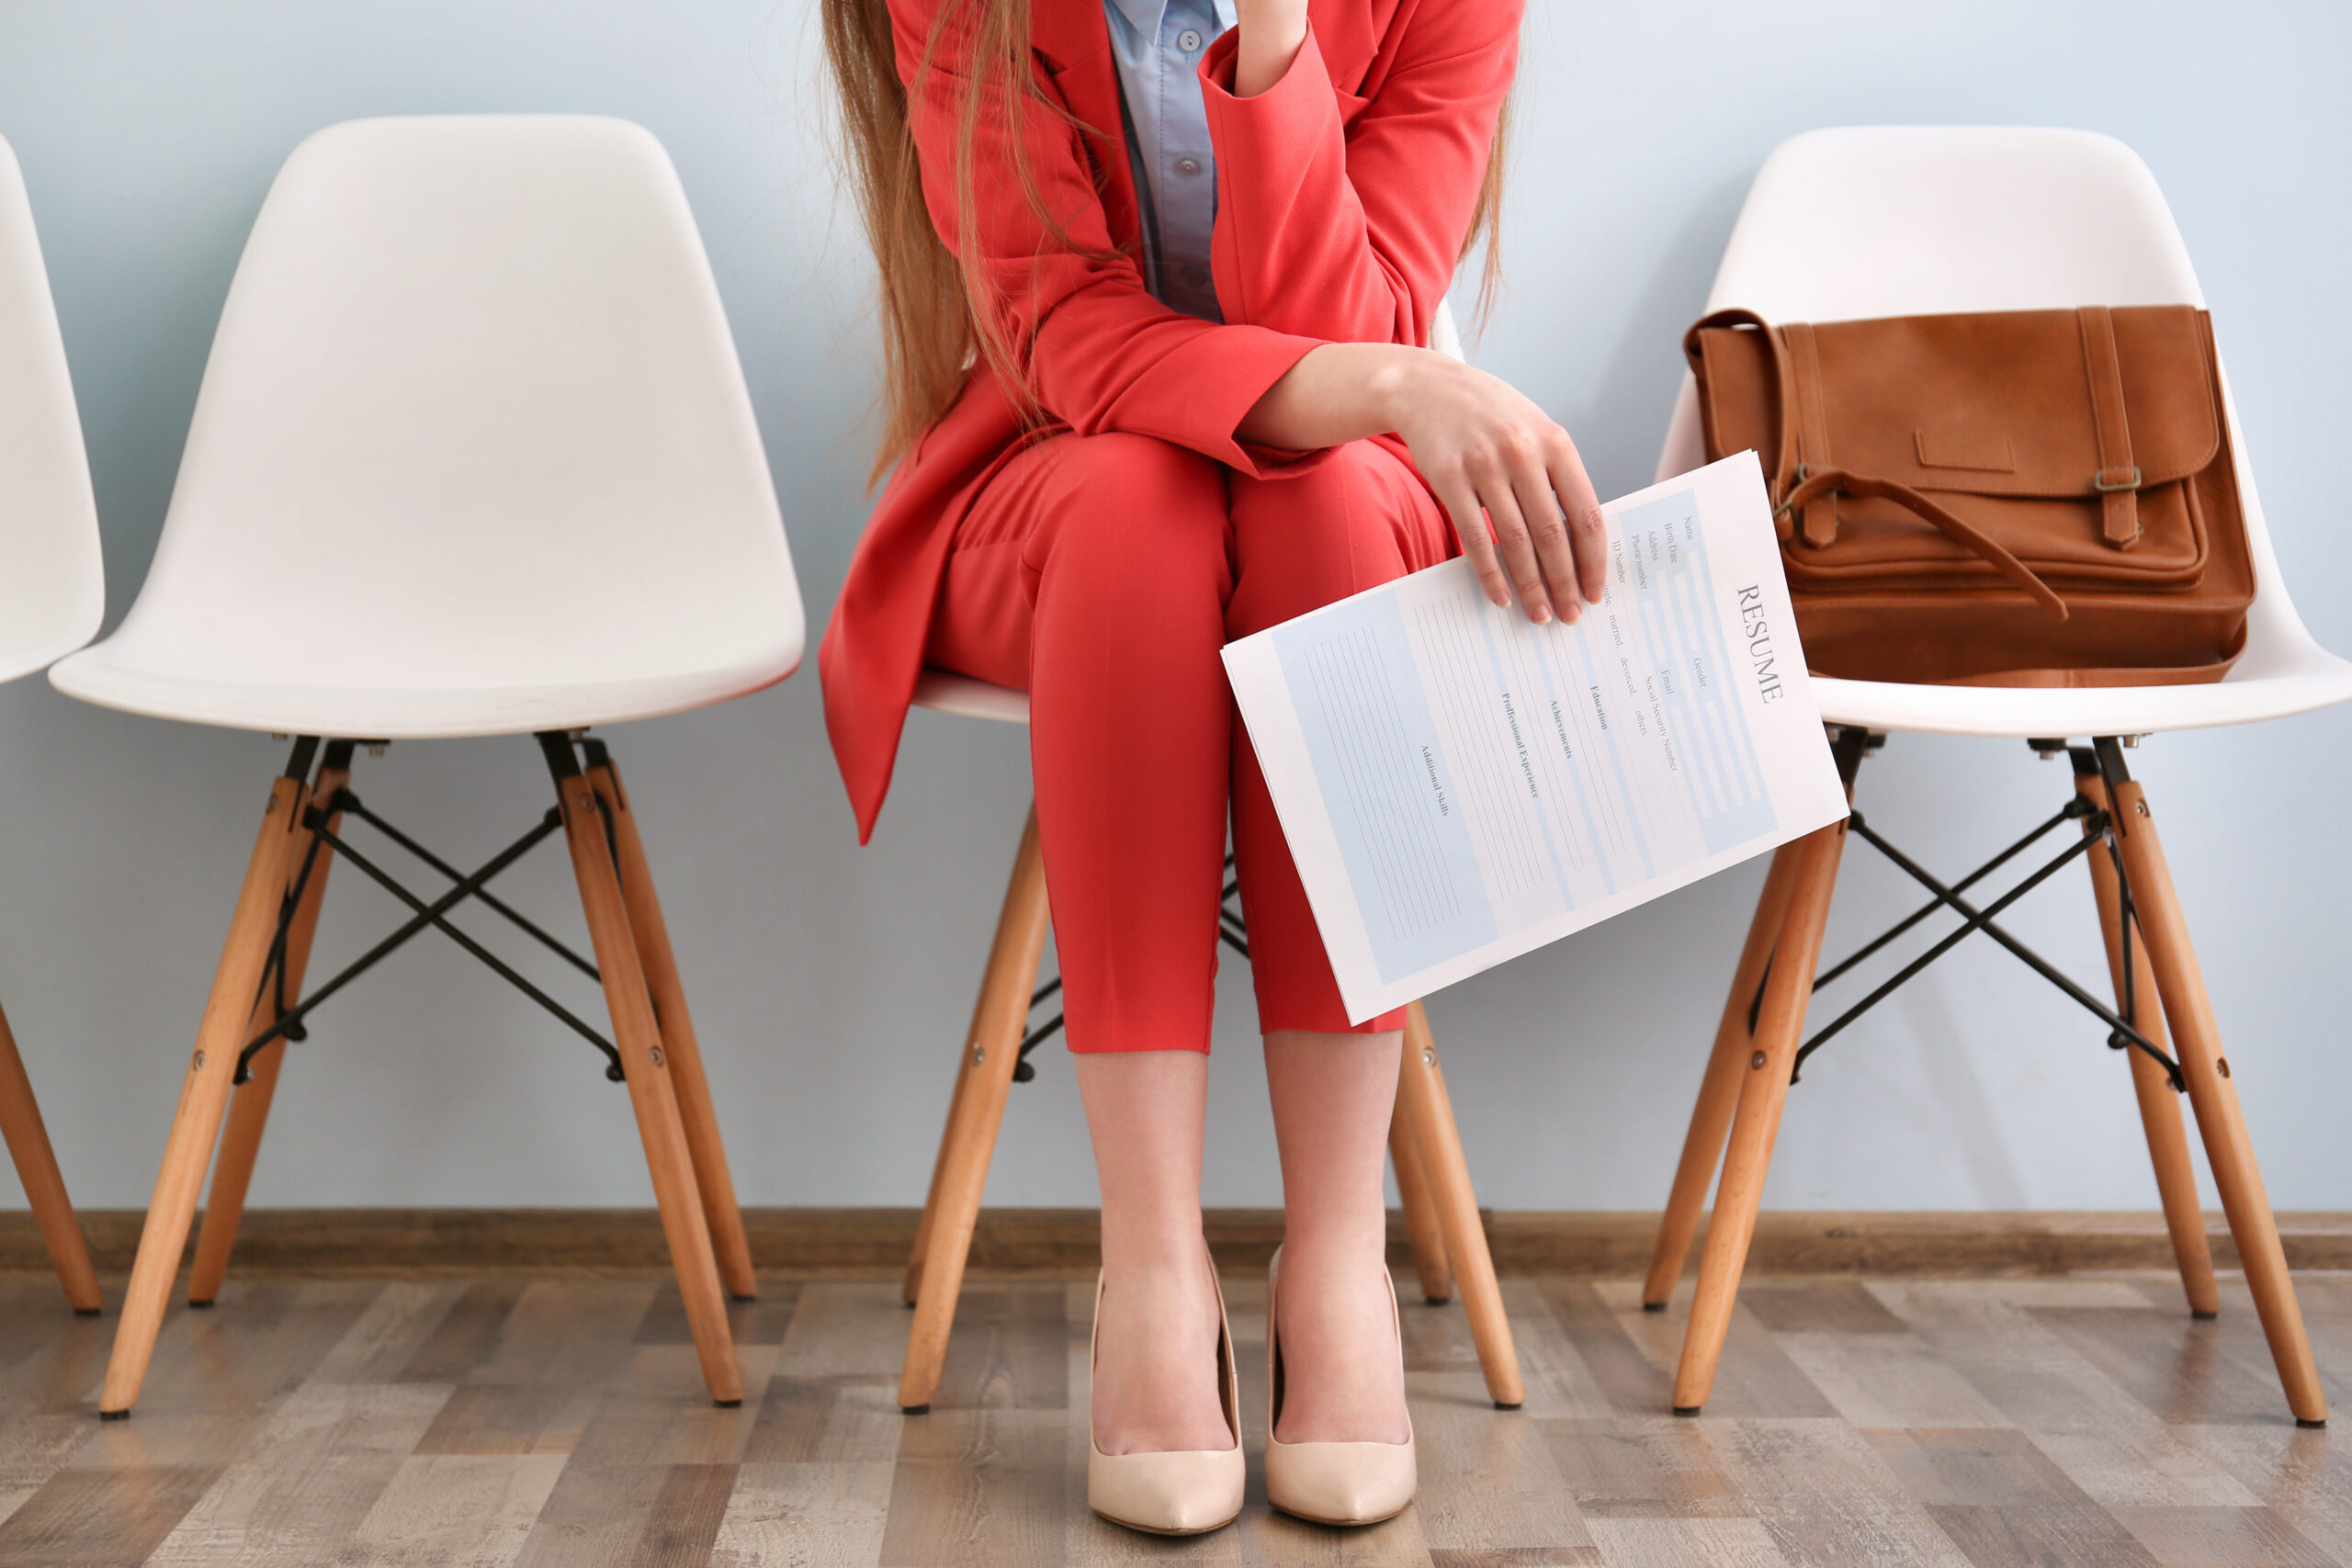 woman at interview waiting